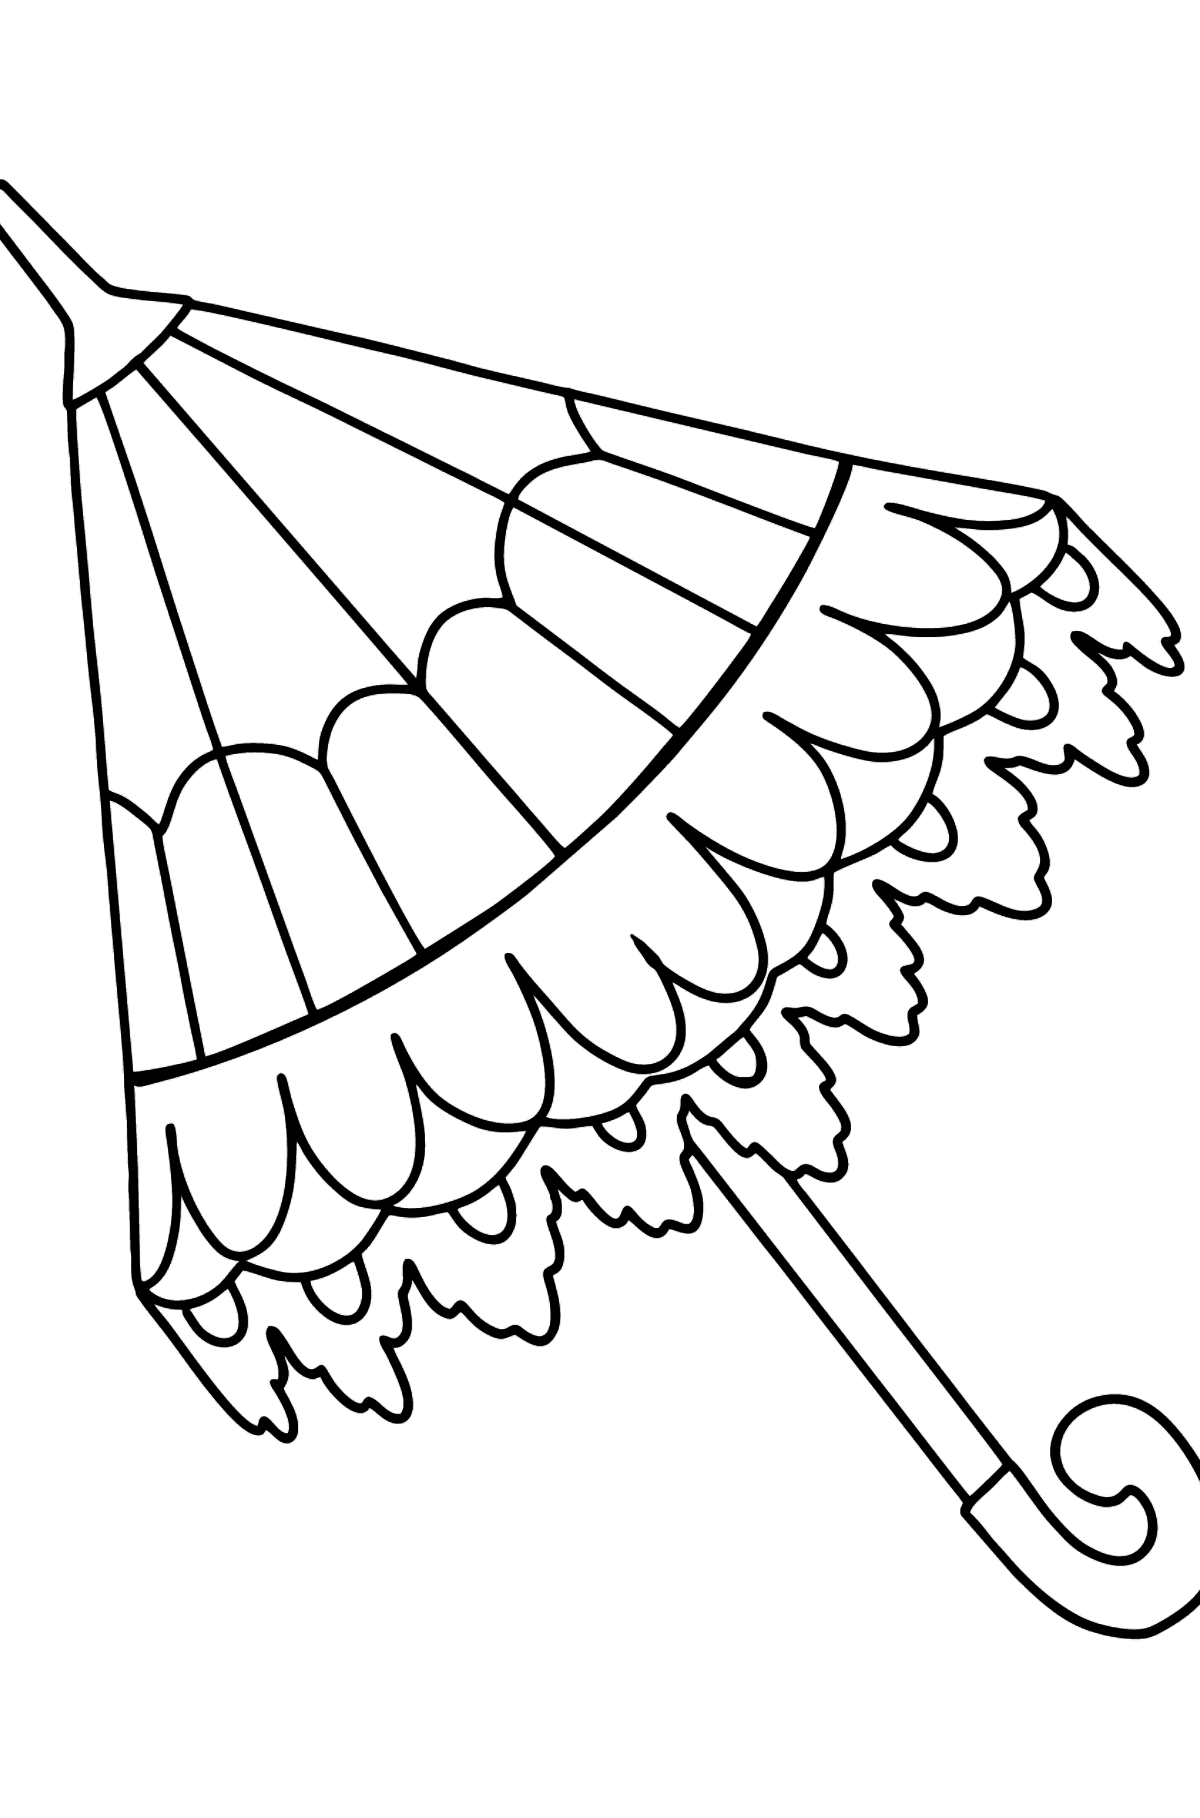 Coloring page with umbrella - Coloring Pages for Kids